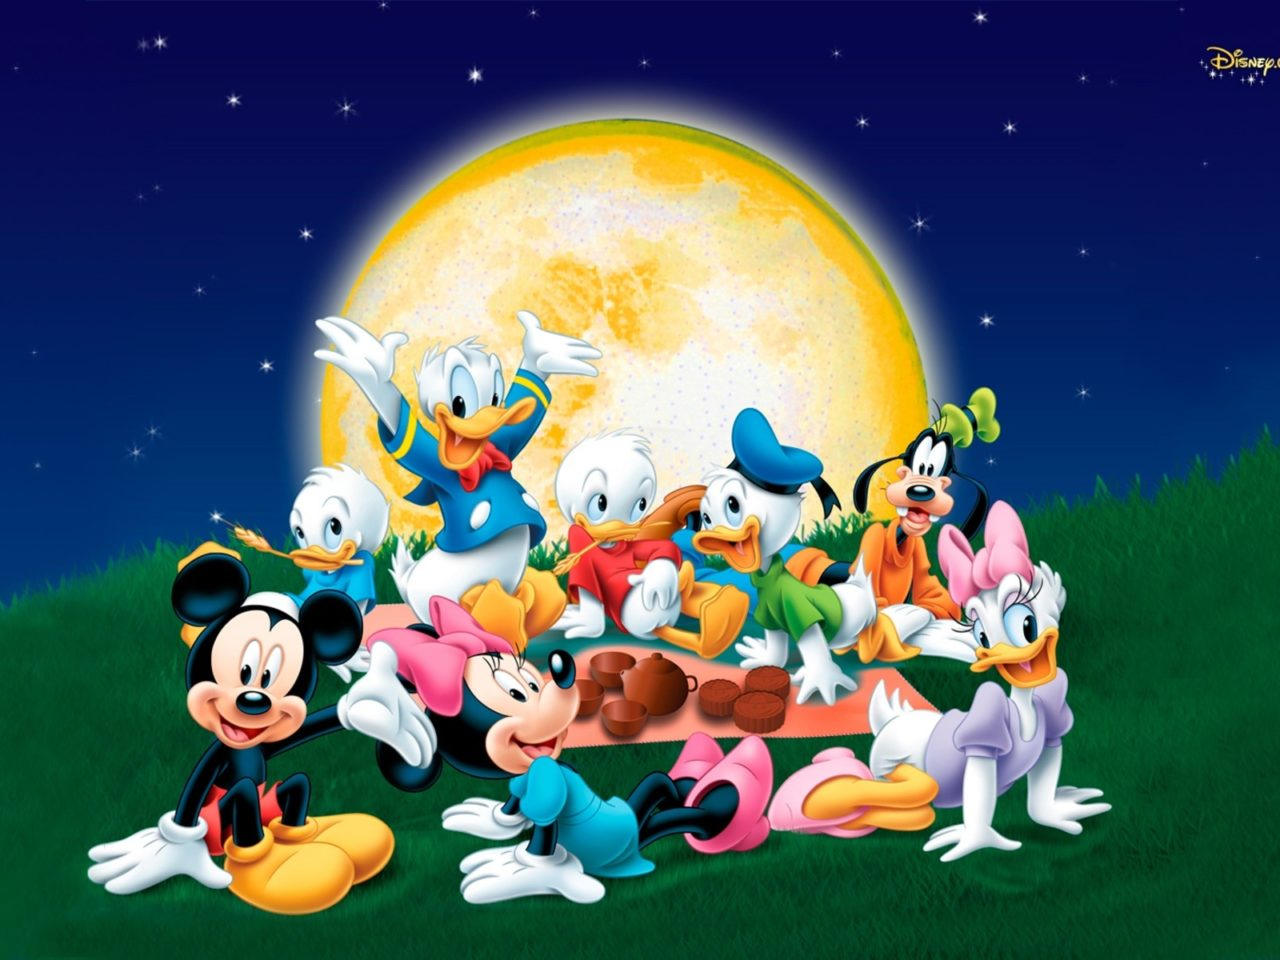 Cartoon Hd Wallpapers For Iphone 5 Mickey Mouse And Friends With Donald Duck Family Wallpaper